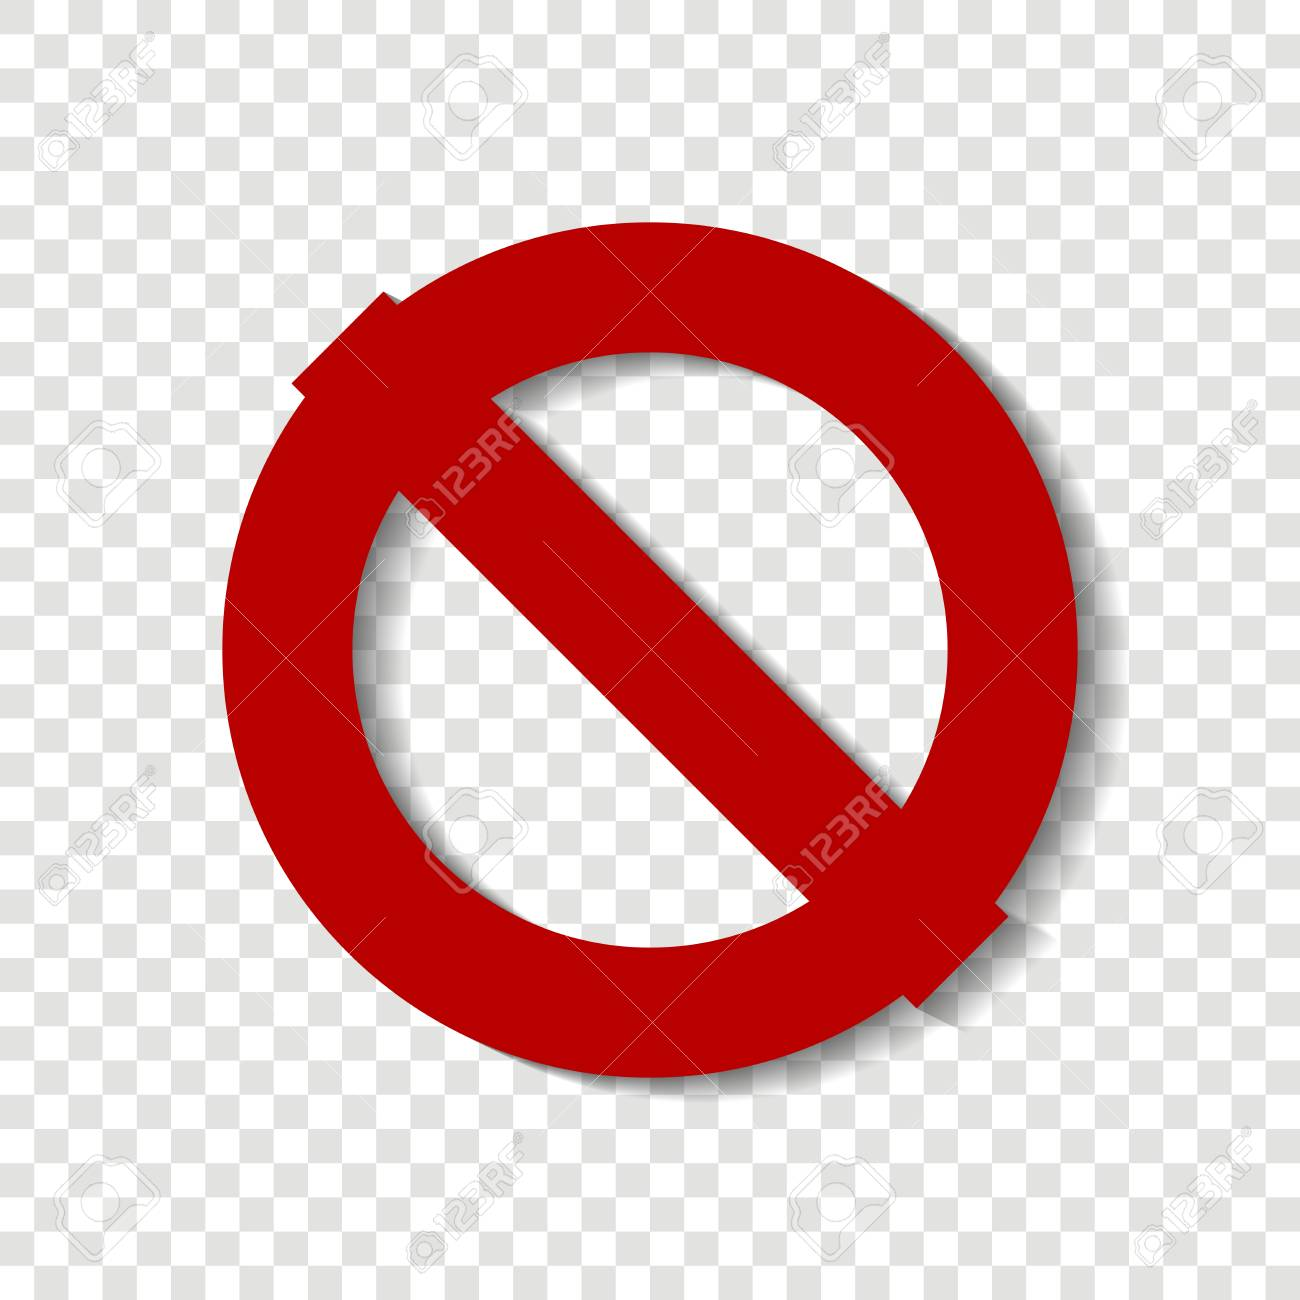 Stop vector icon The crossed-out circle  Red stop sign  Warning